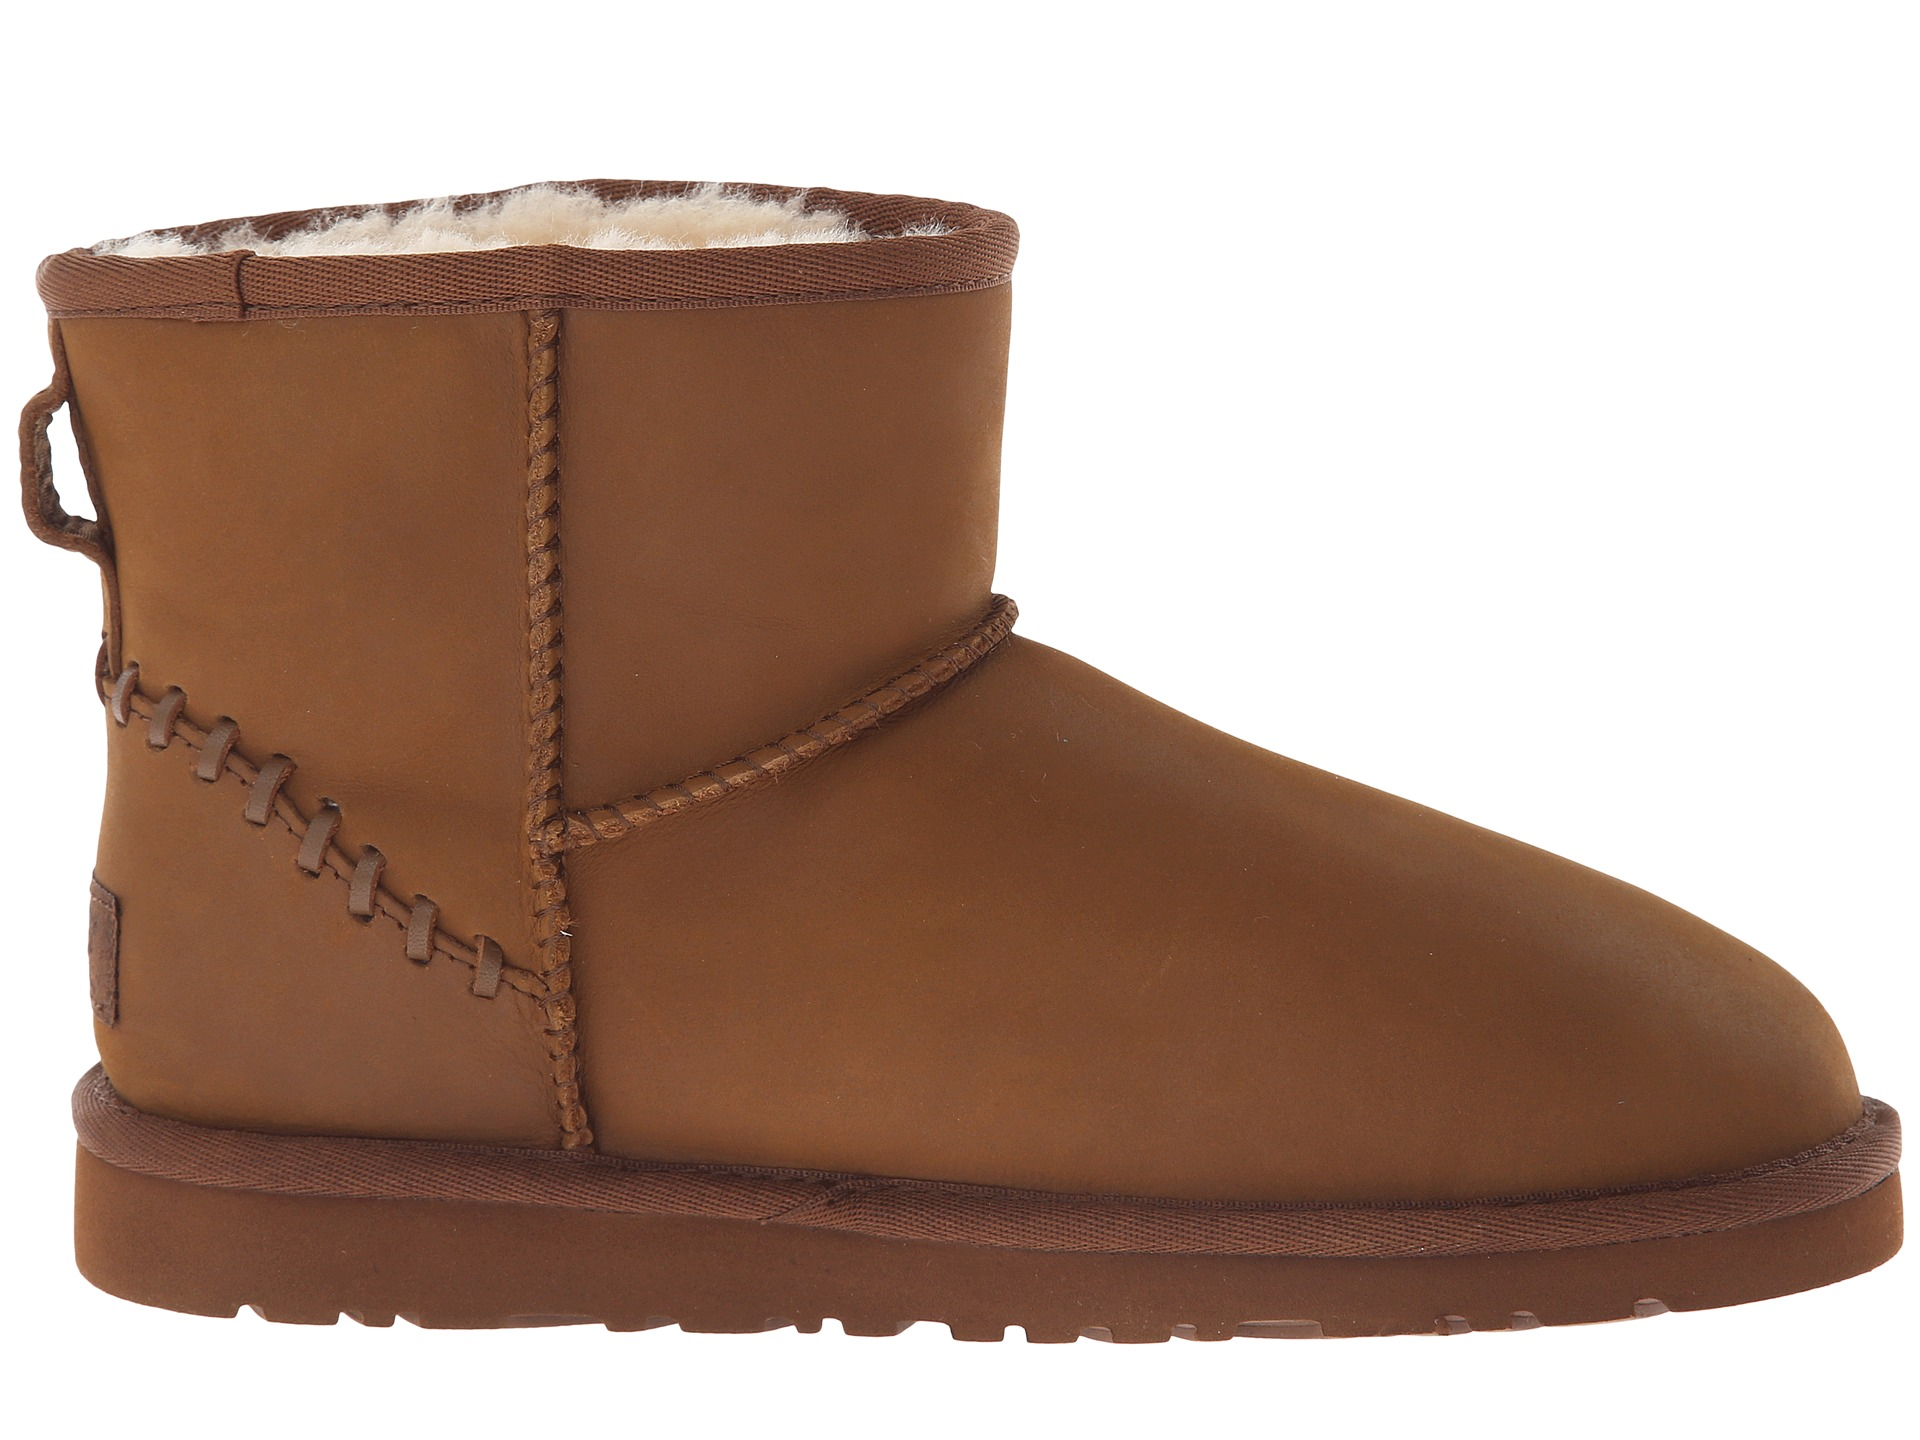 Ugg Boots Dublin Price